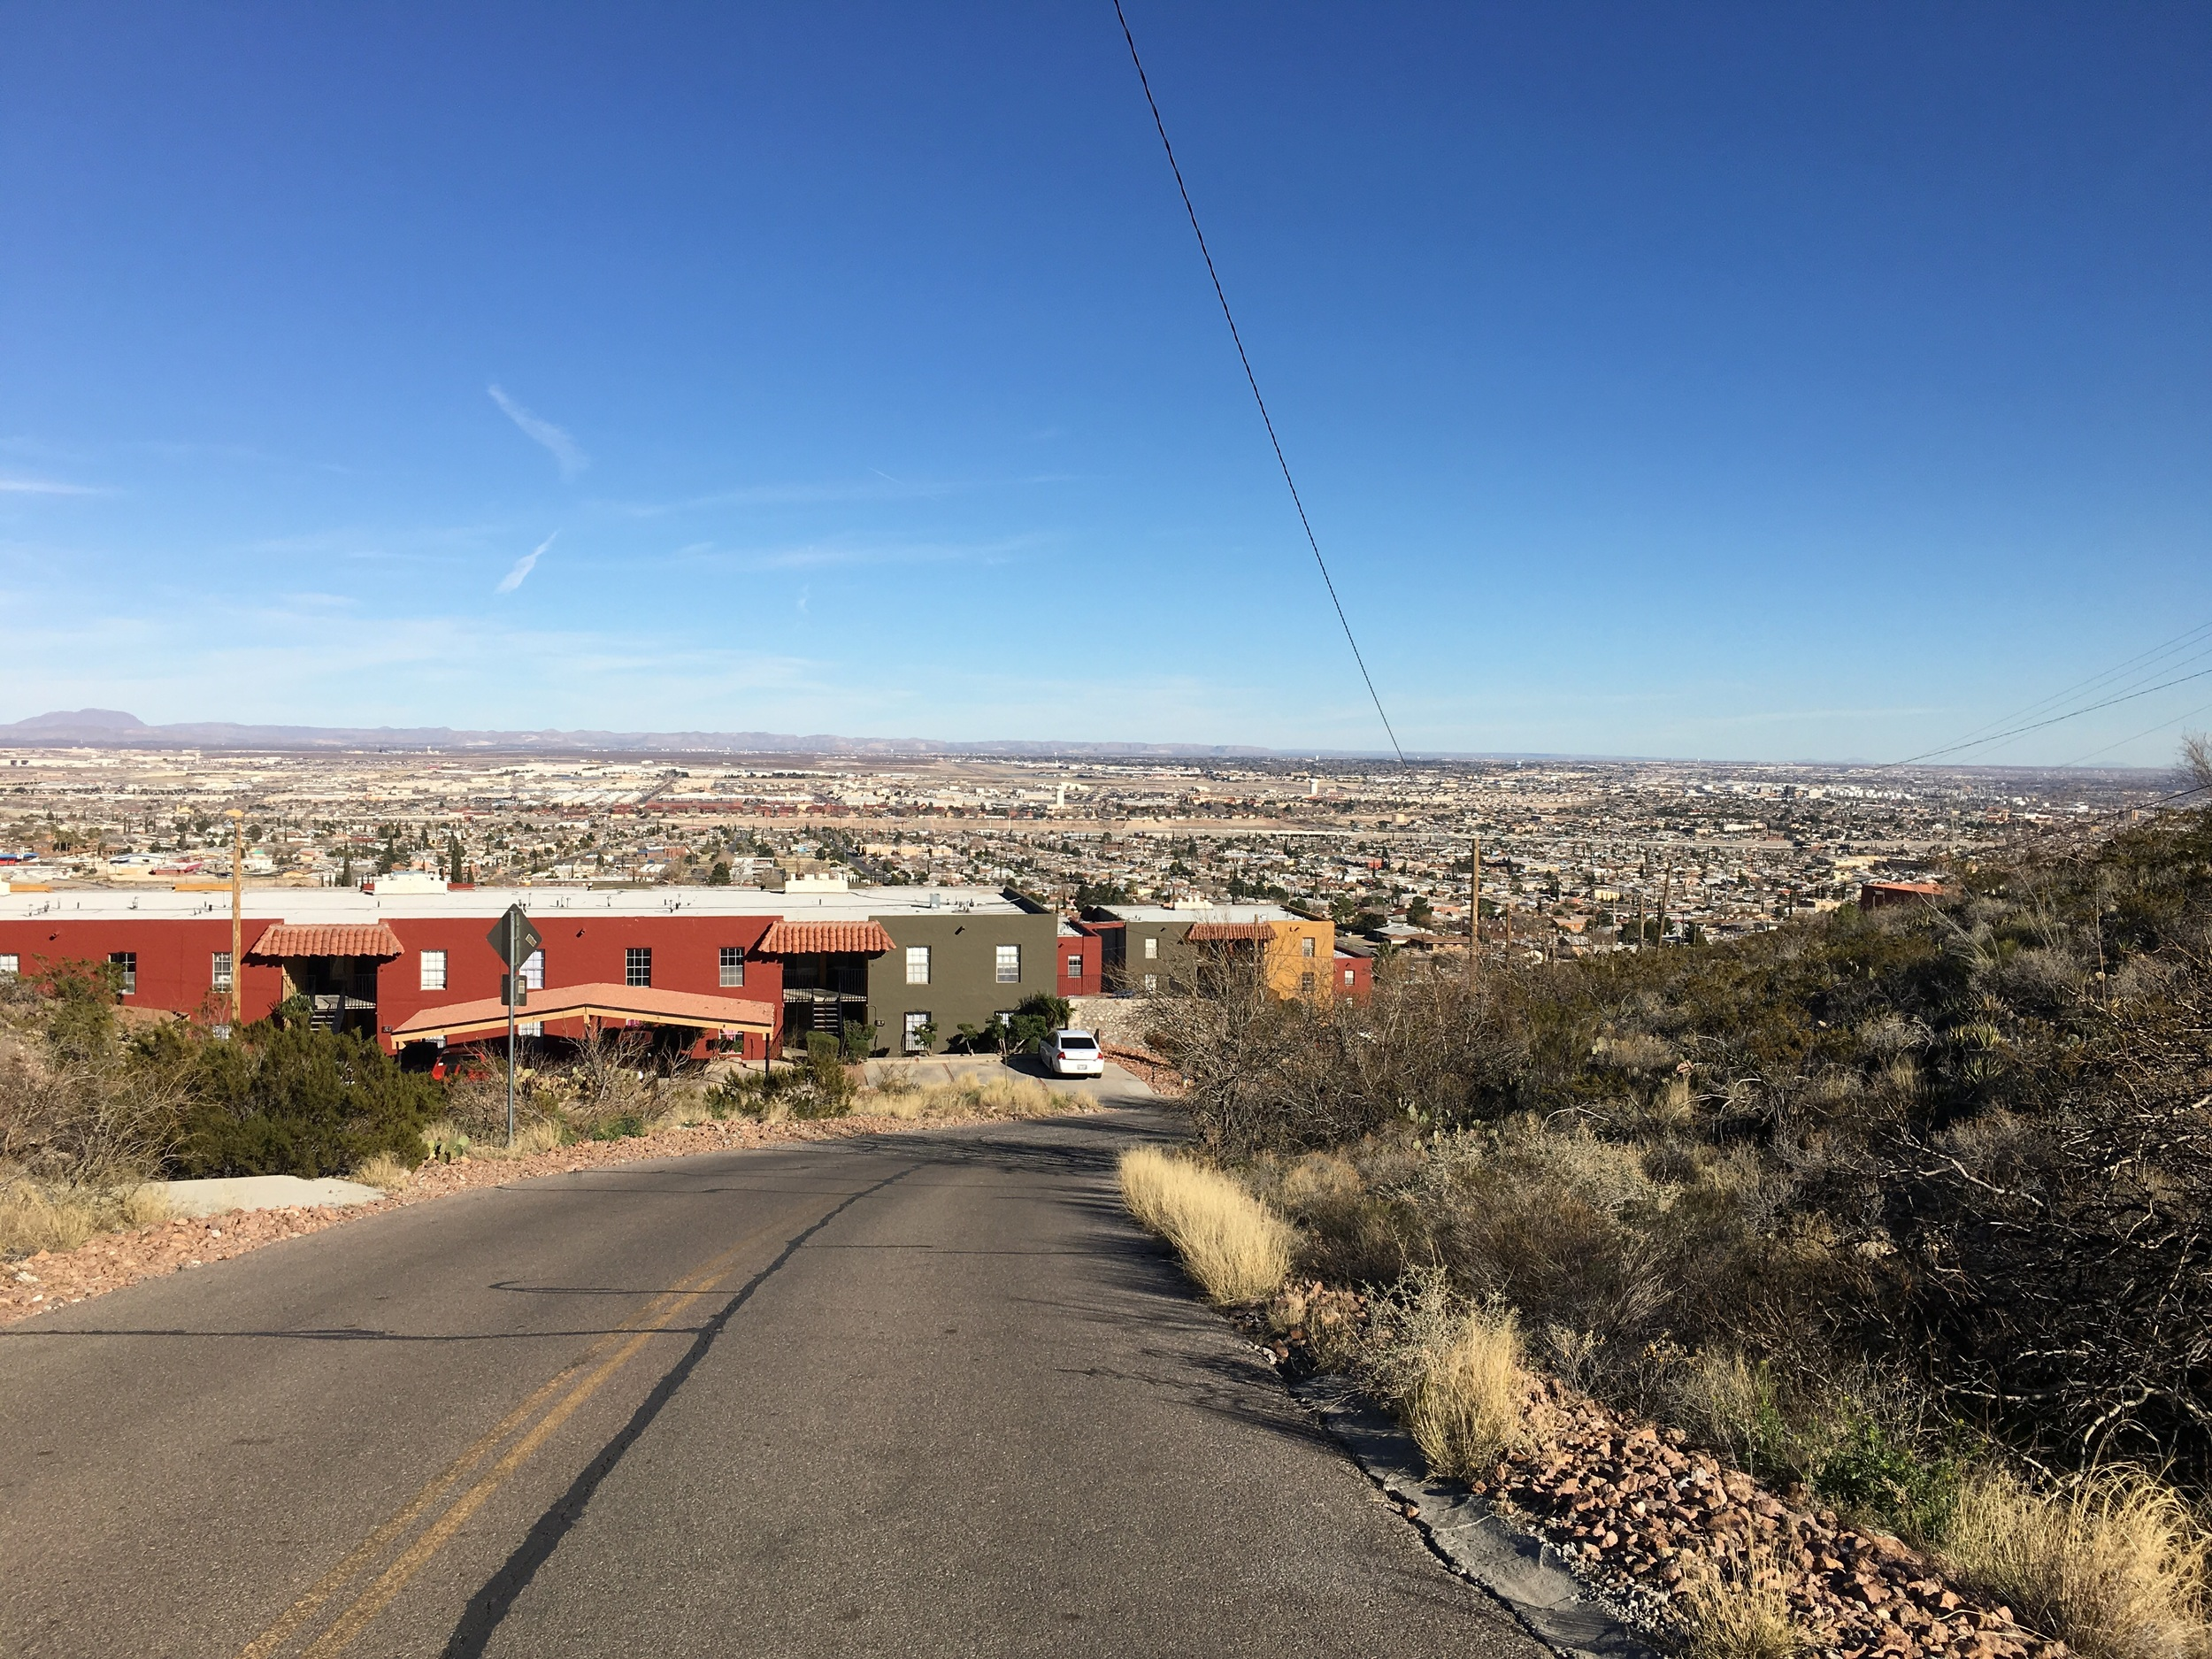 A  view of the El Paso sprawl